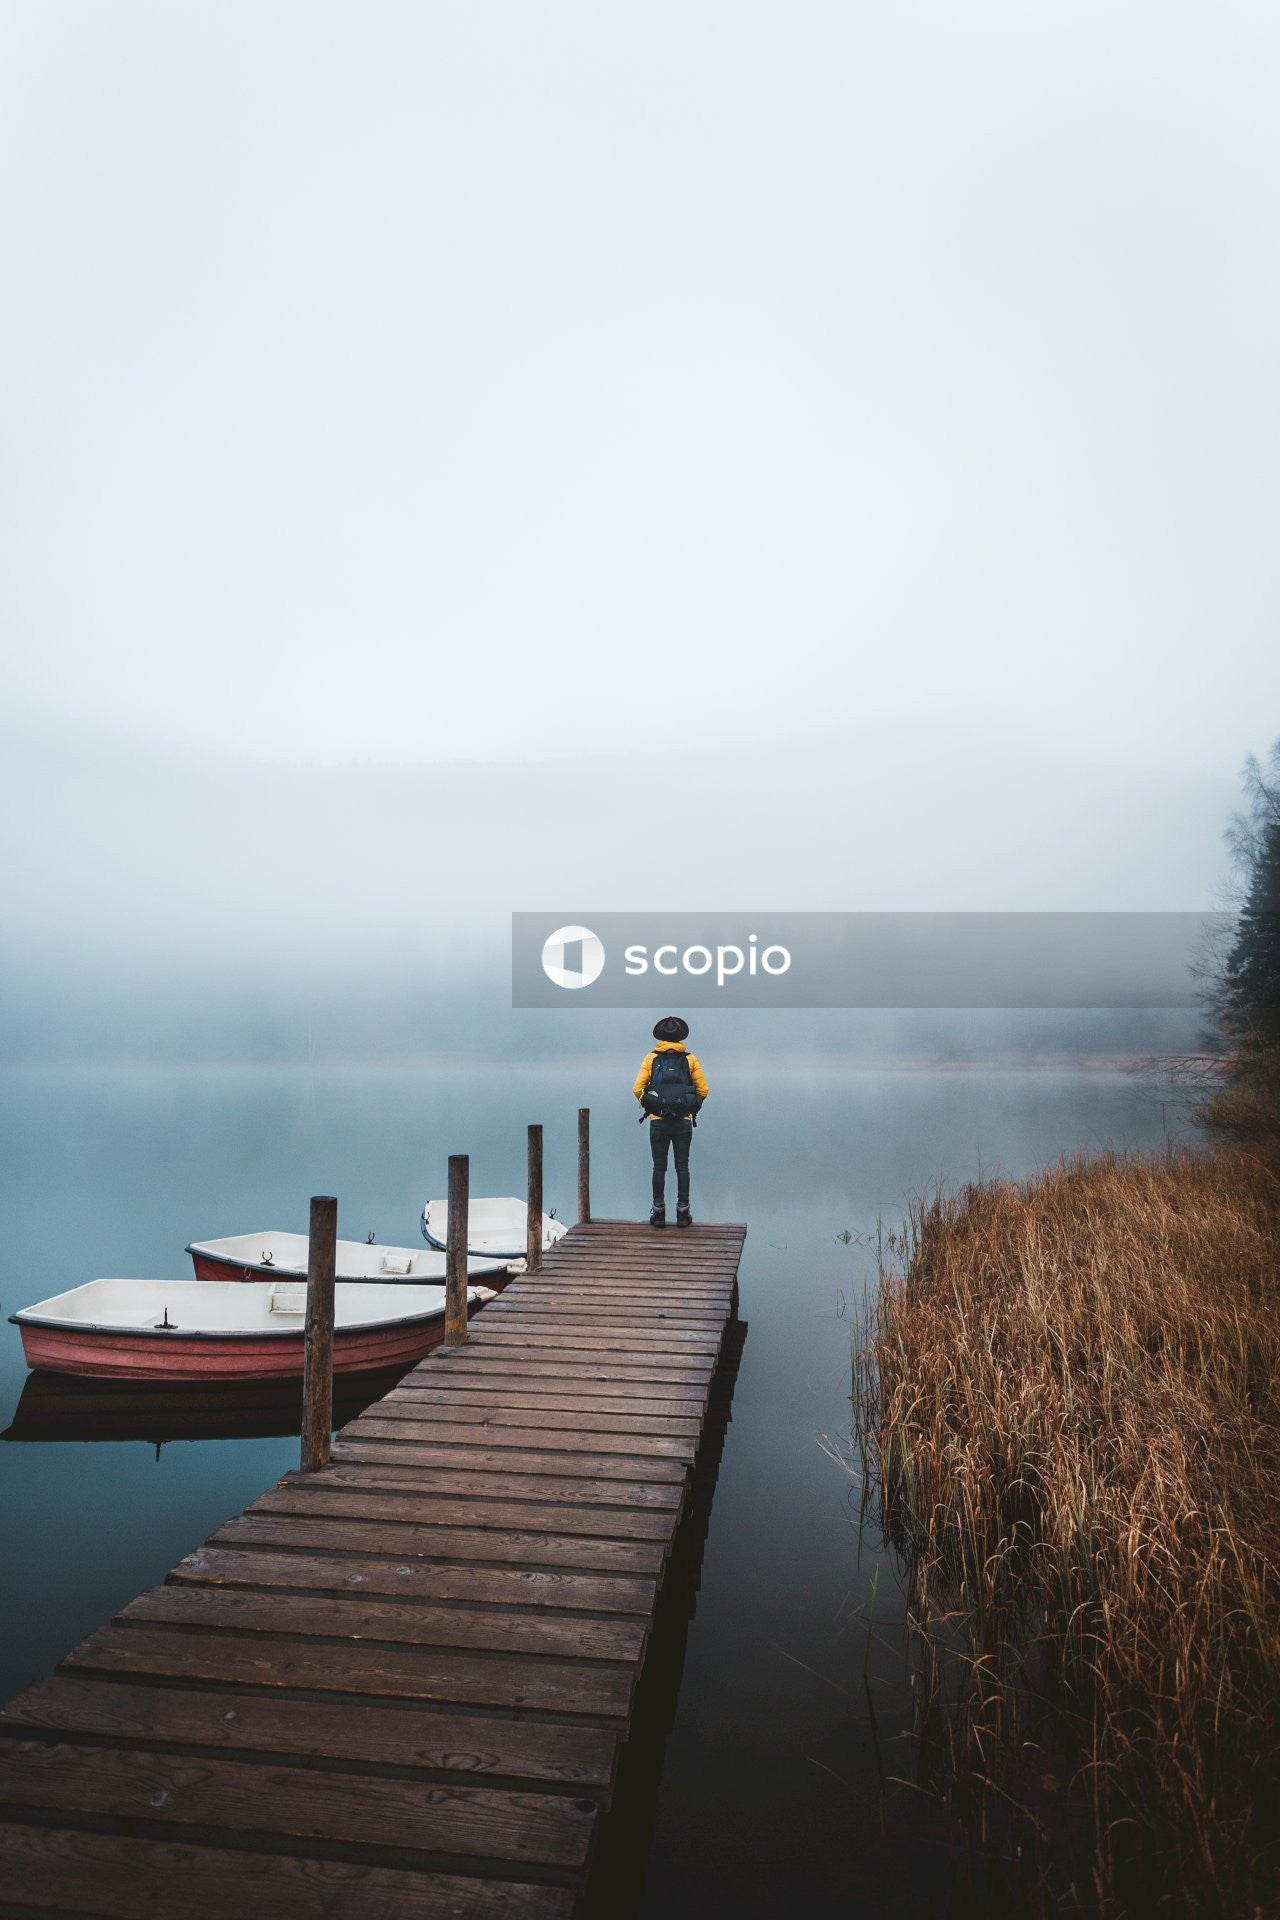 Person in black jacket and black pants standing on brown wooden dock